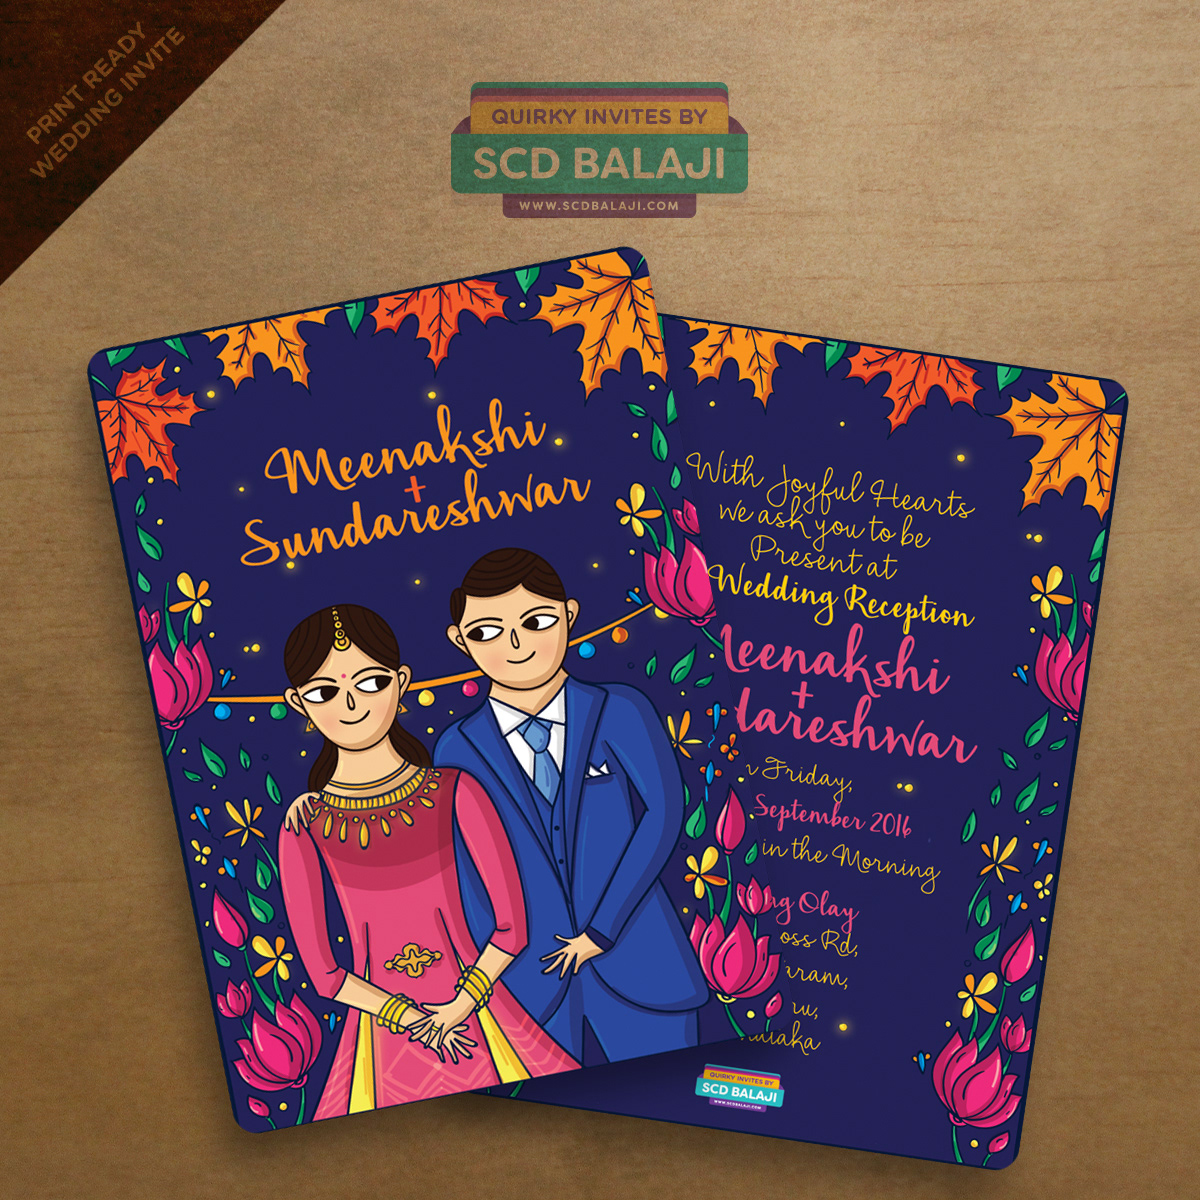 Quirky Wedding Invitation: Quirky Indian Wedding Invitations